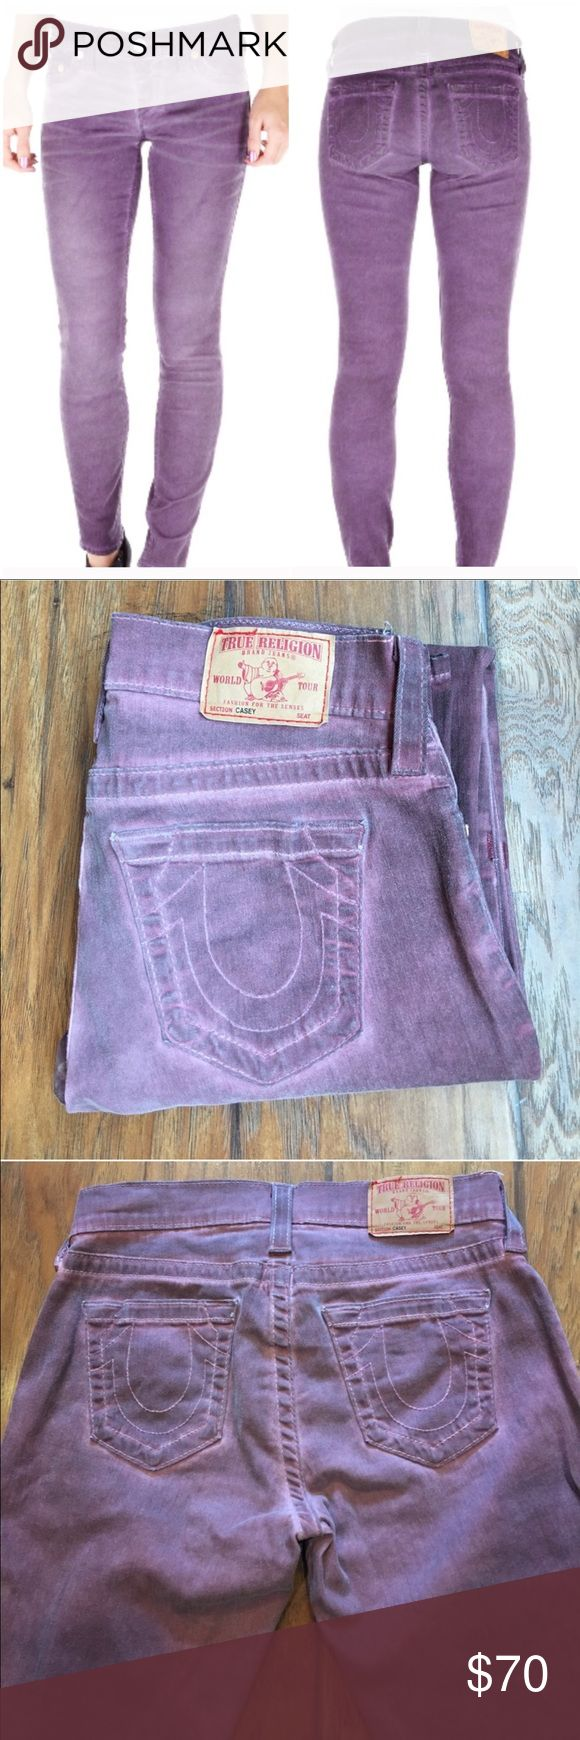 """True Religion Casey Skinny Stonewash Jeans You'll fall in love with these True Religion Casey Skinny Jeans in Purple. The purple denim also has a lighter stonewash effect adding a trendy distressed feel to the garments. The true religion branding is included on the hardware and the jeans feature a classic 5 pocket design. Wear with a loose black vest and black leather ankle boots for a cool rock and roll look. EUC!  98% Cotton 2% Elastane  Fit: Skinny Waist: 28"""" Color: Purple stonewash Thigh…"""